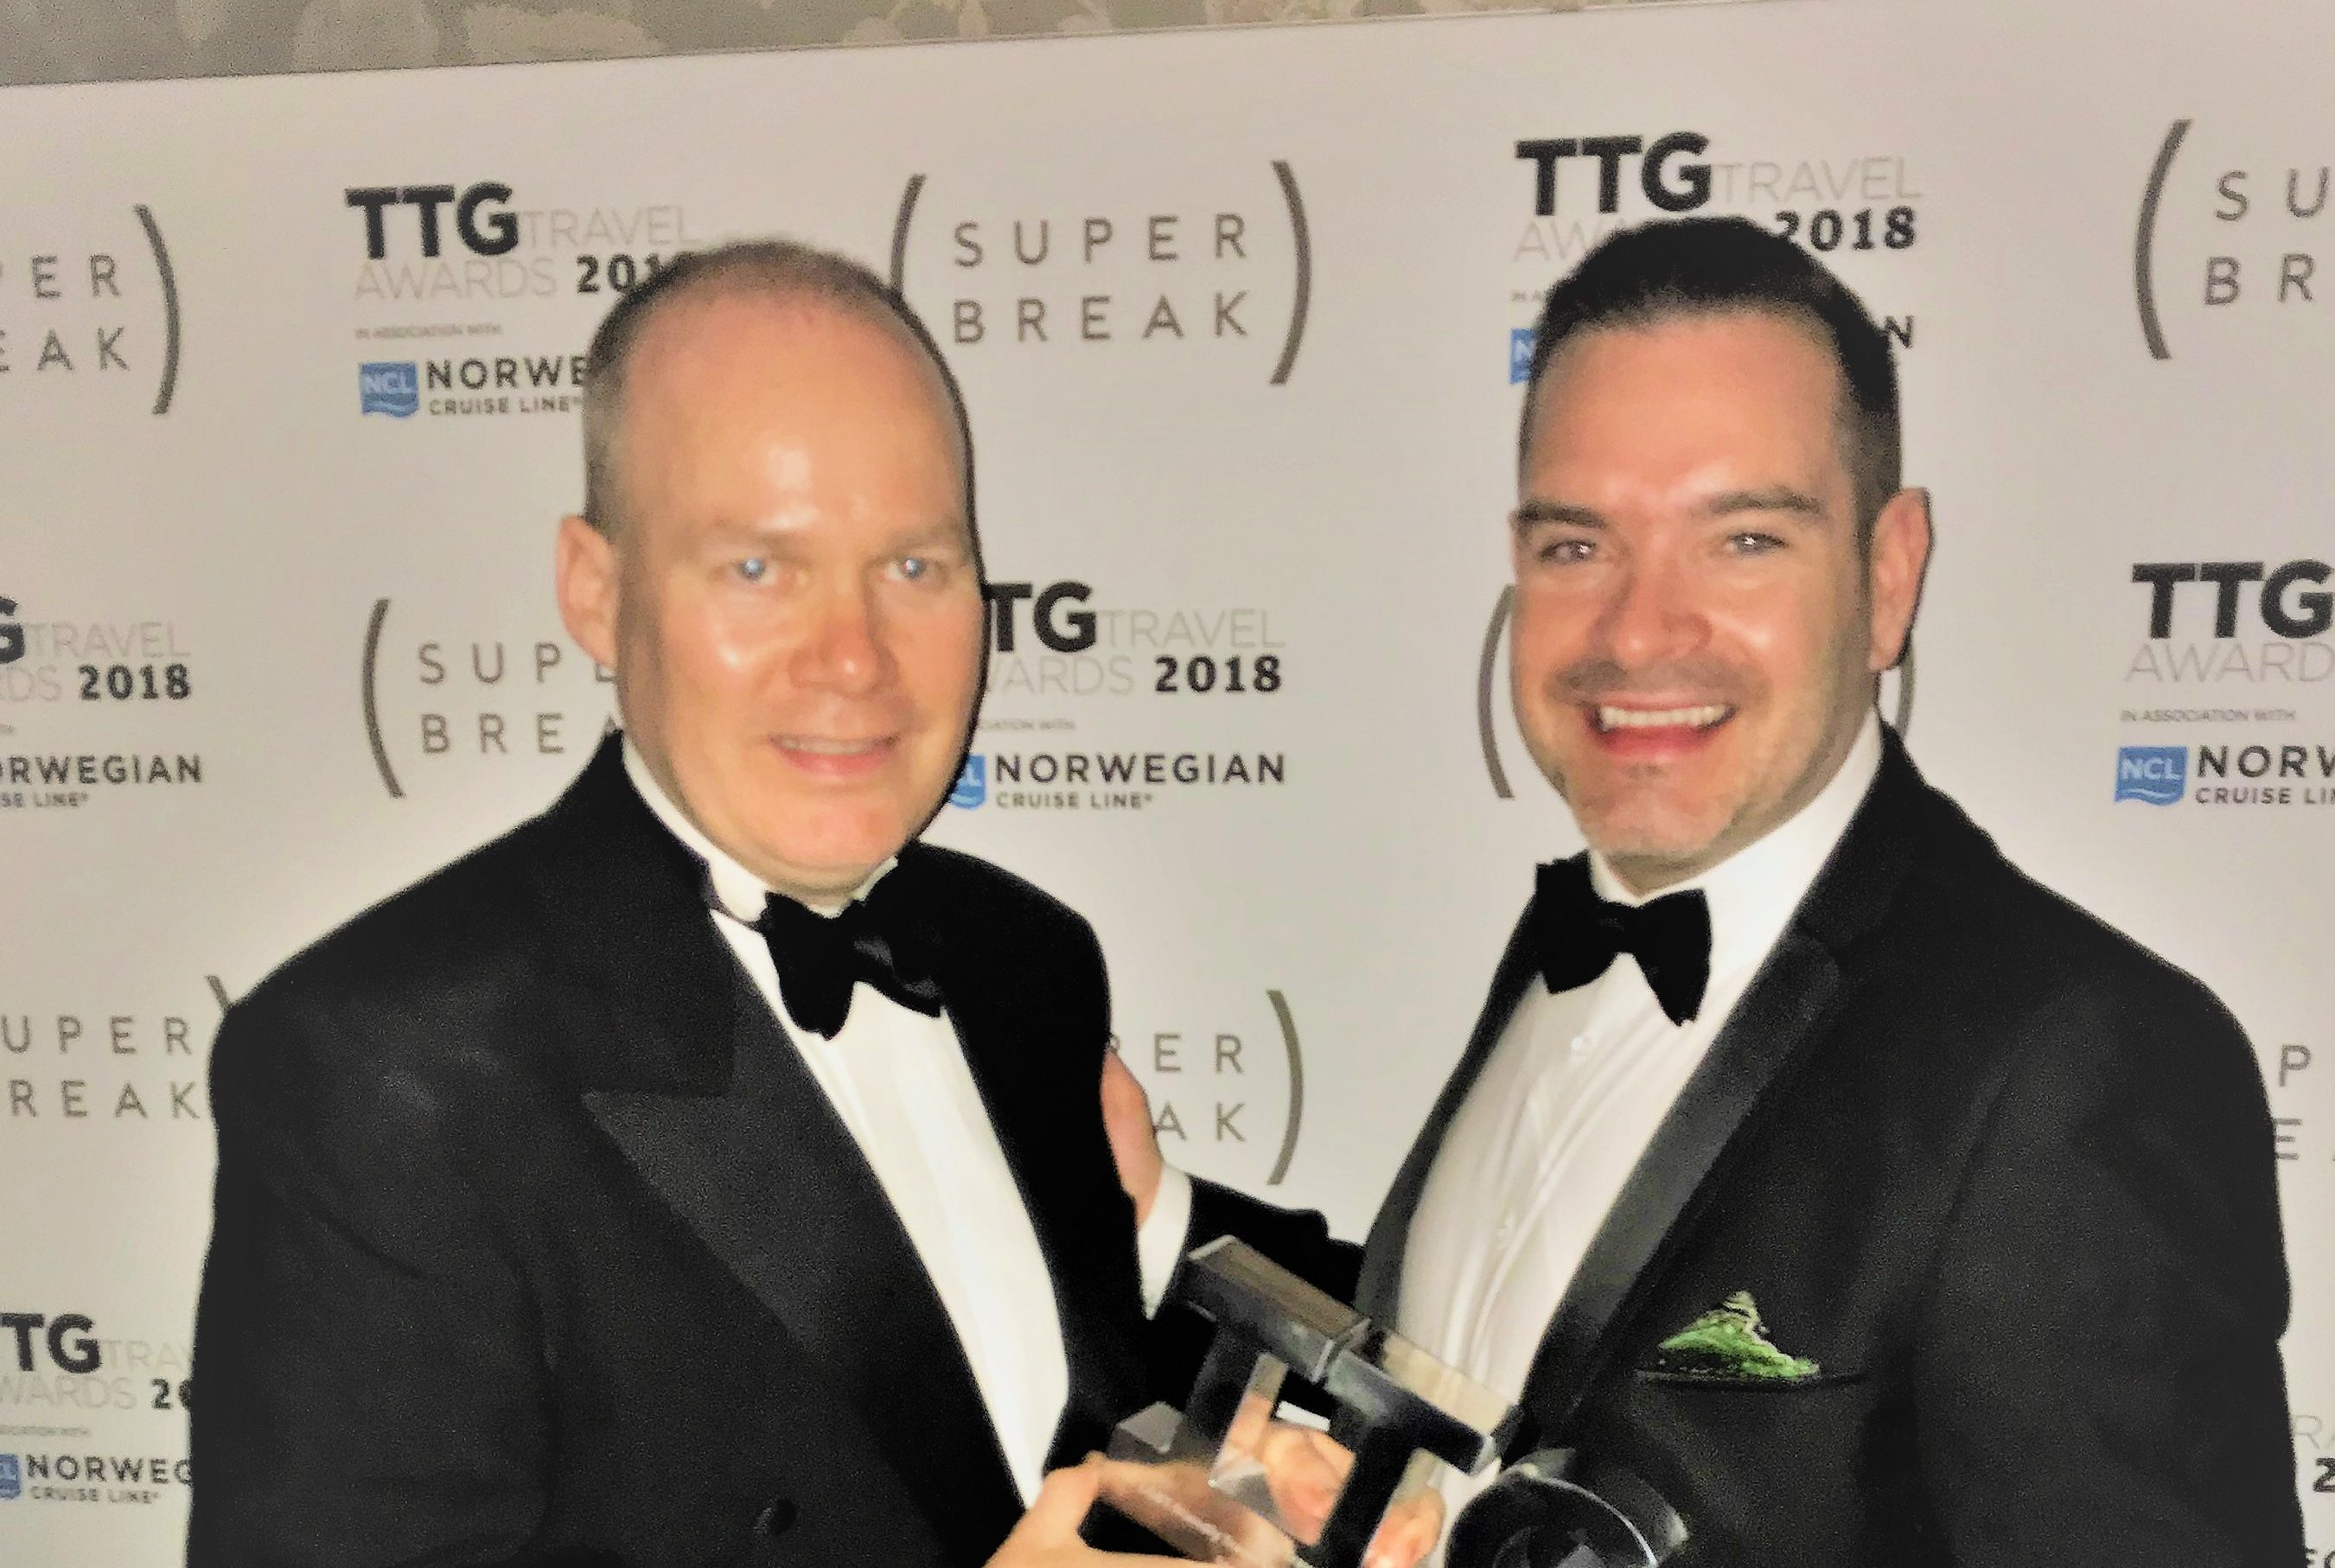 Airport wins award for being top LBGT friendly travel firm ...